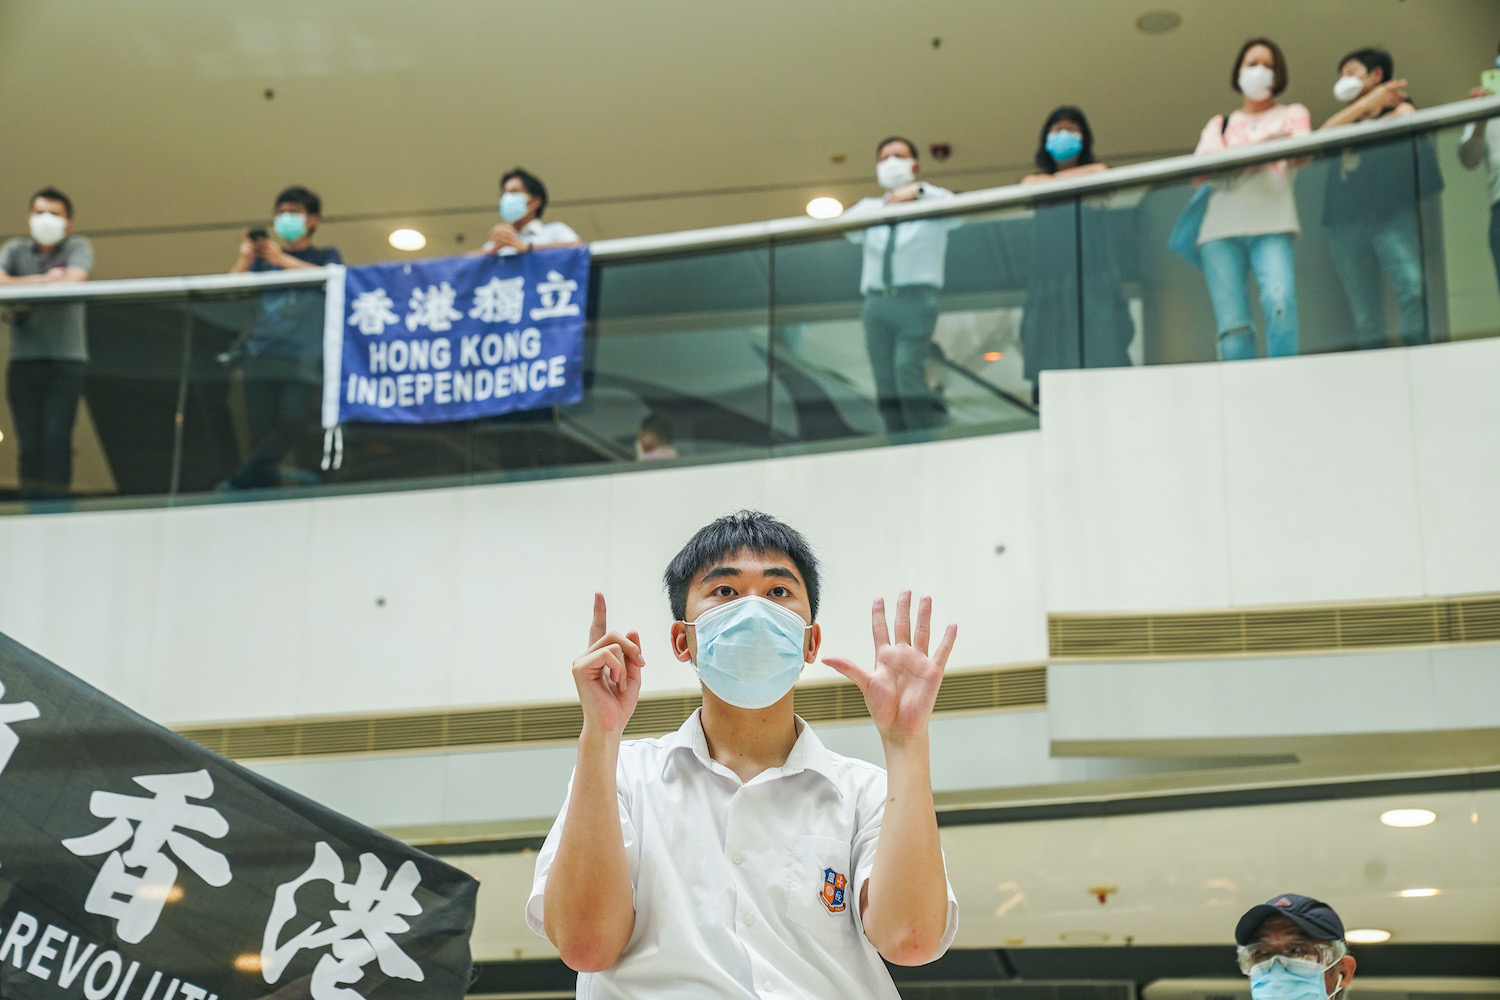 """A student makes a gesture indicating """"Five demands, not one less"""", one of the mottos of pro-democracy activists, during a lunchtime protest at the International Finance Center (IFC) shopping mall in Hong Kong on Friday. (Bloomberg Photo)"""